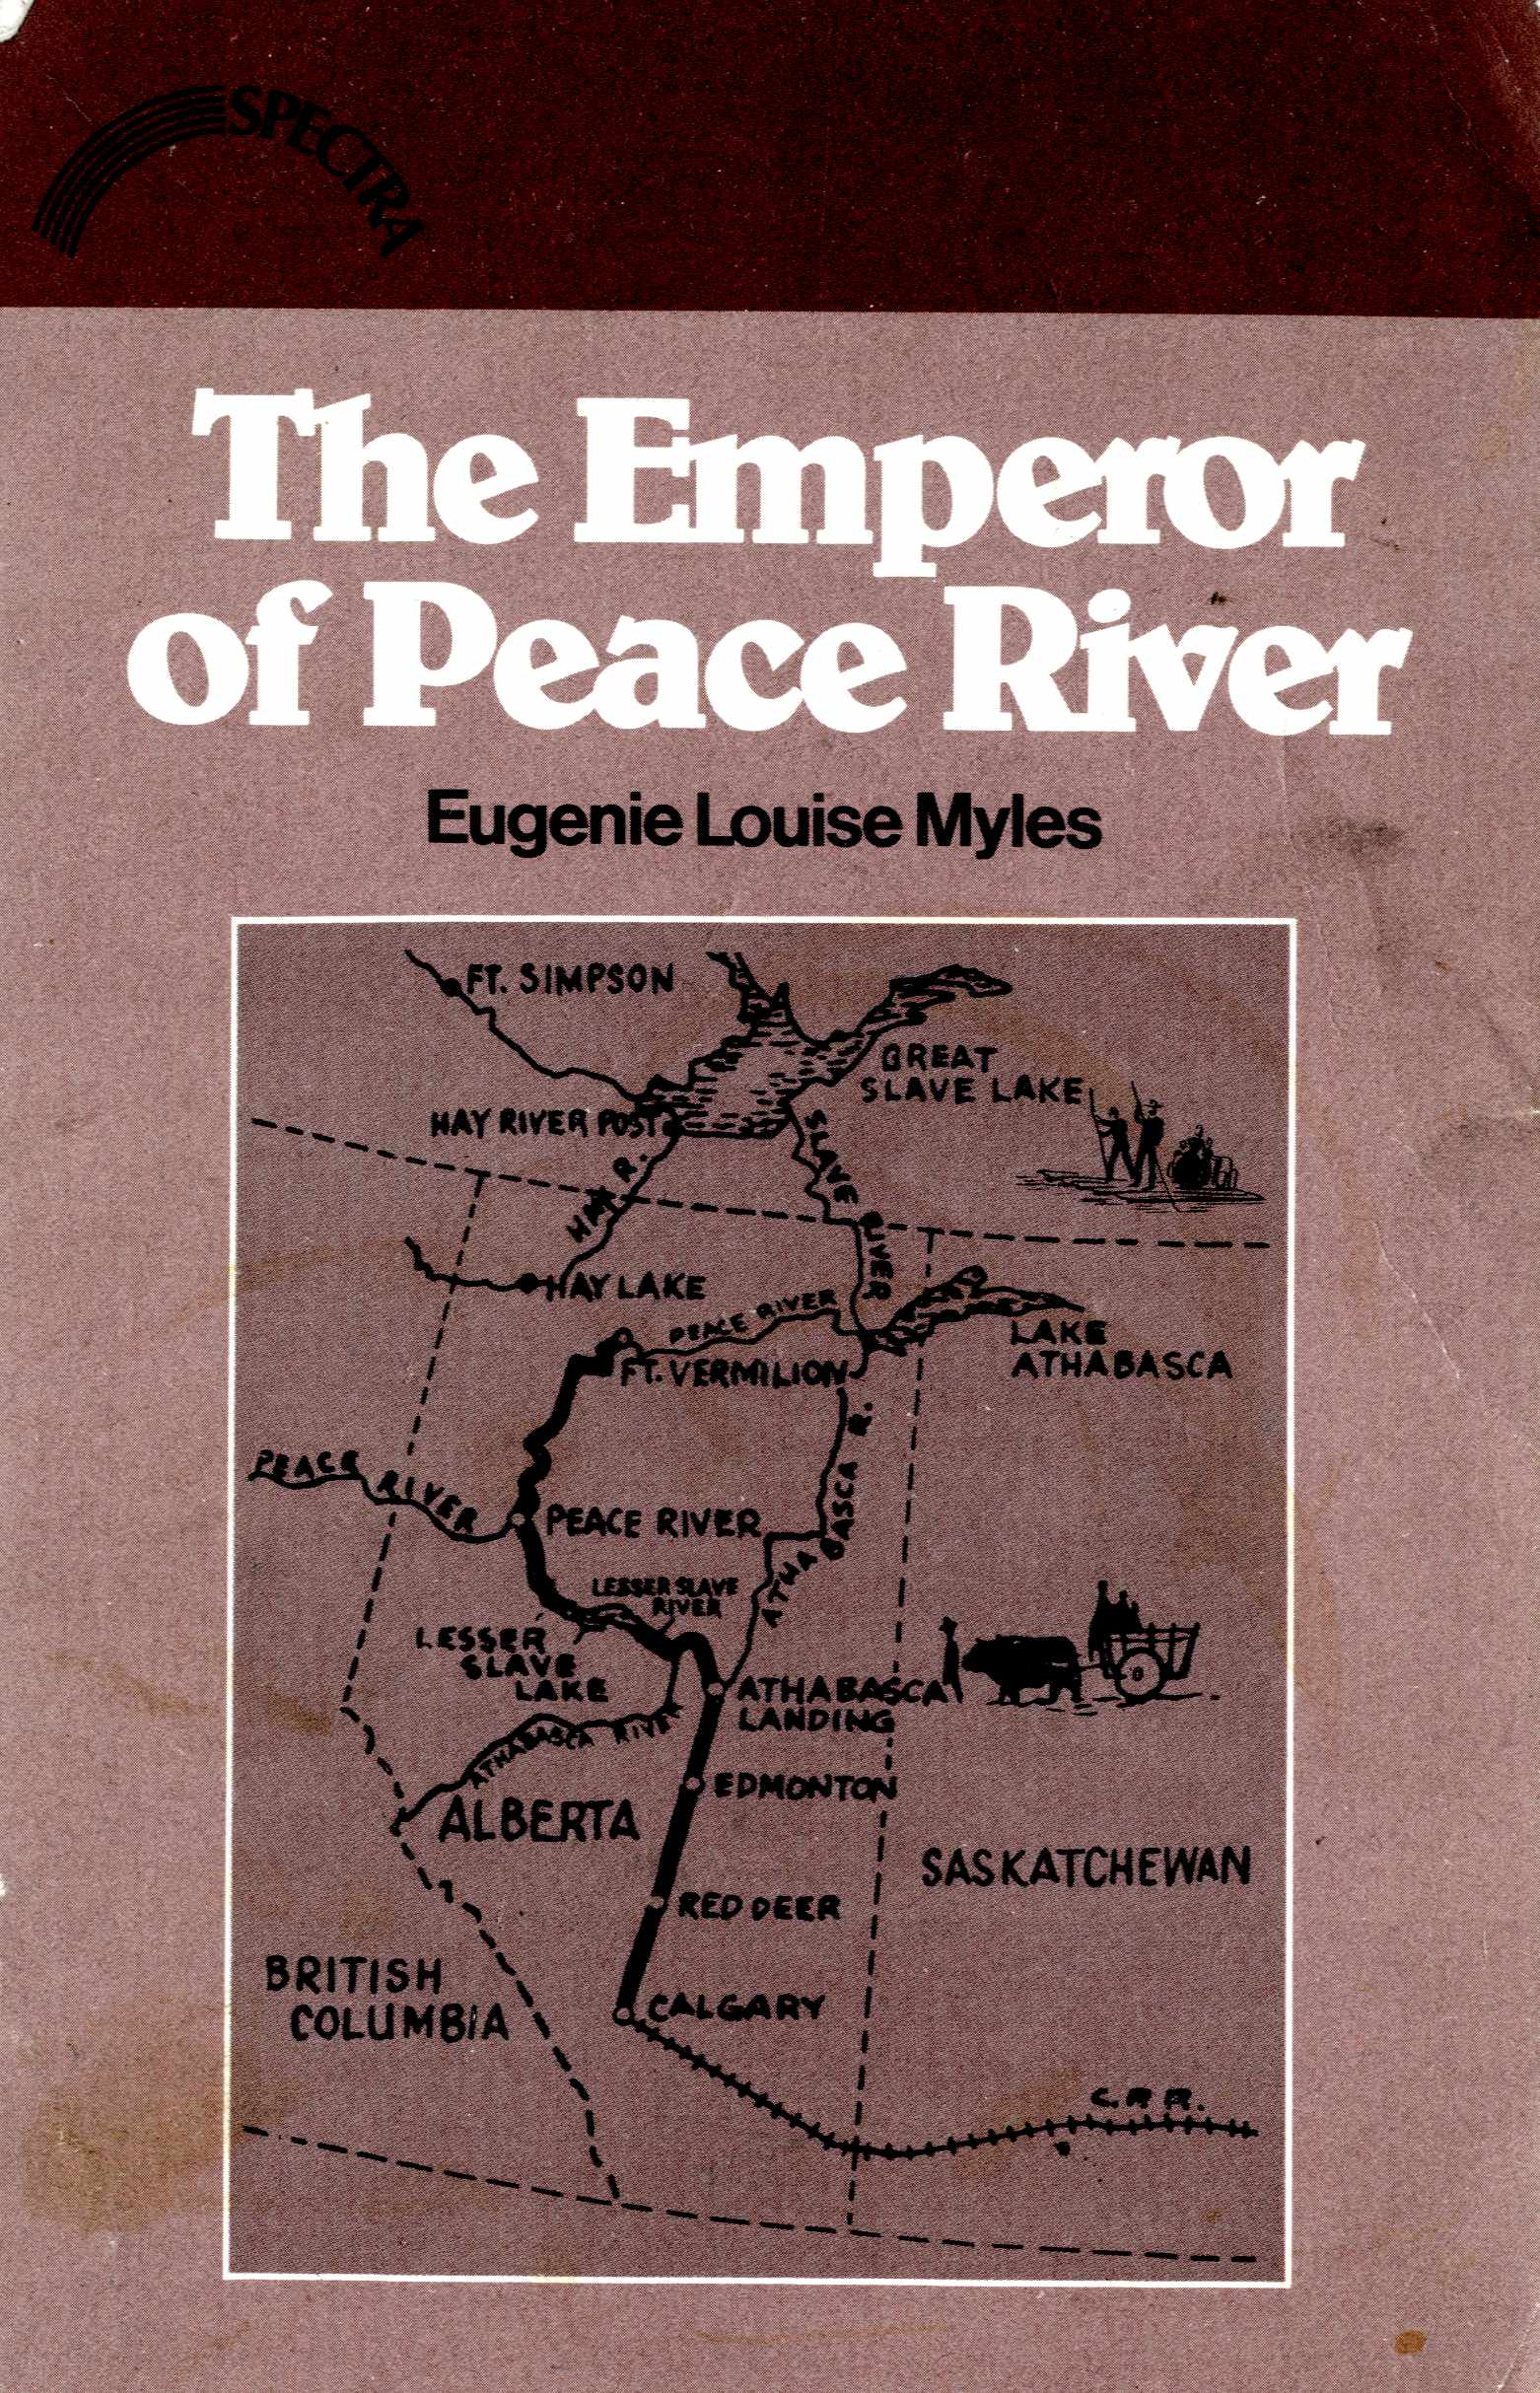 The Emperor of Peace River Image